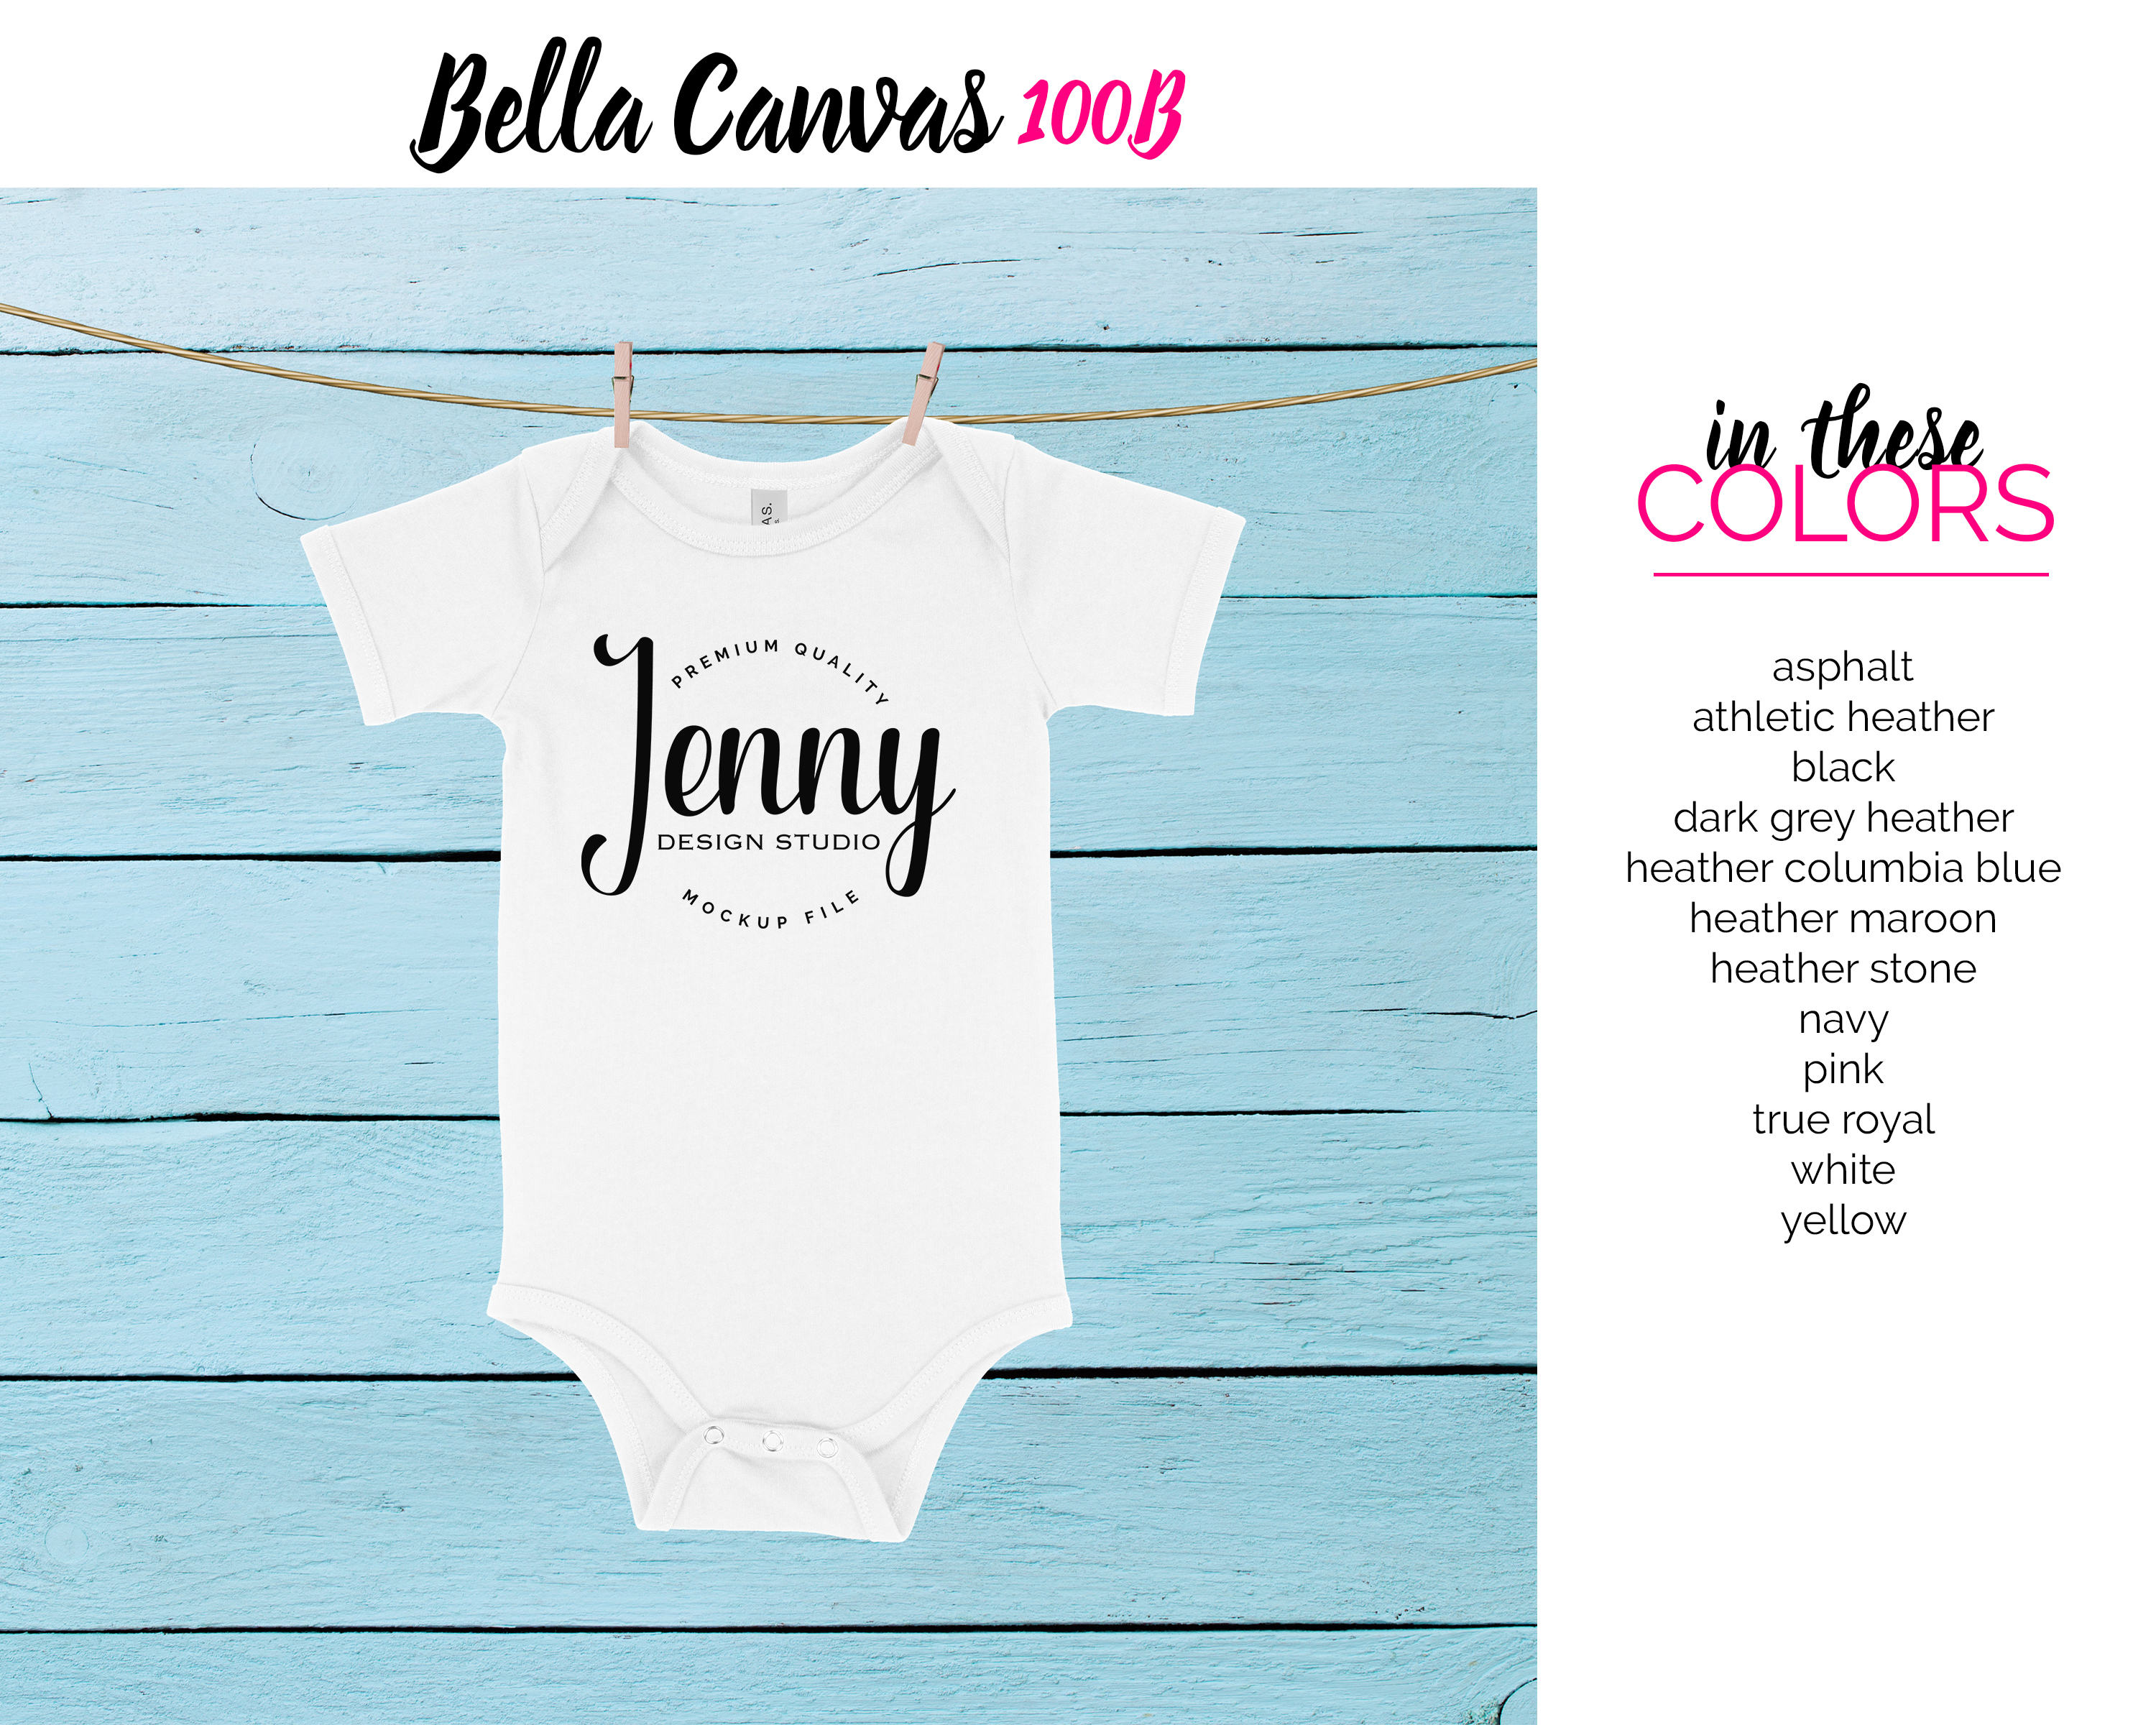 Bella Canvas 100B Unisex Bodysuit Mockup Bundle example image 2